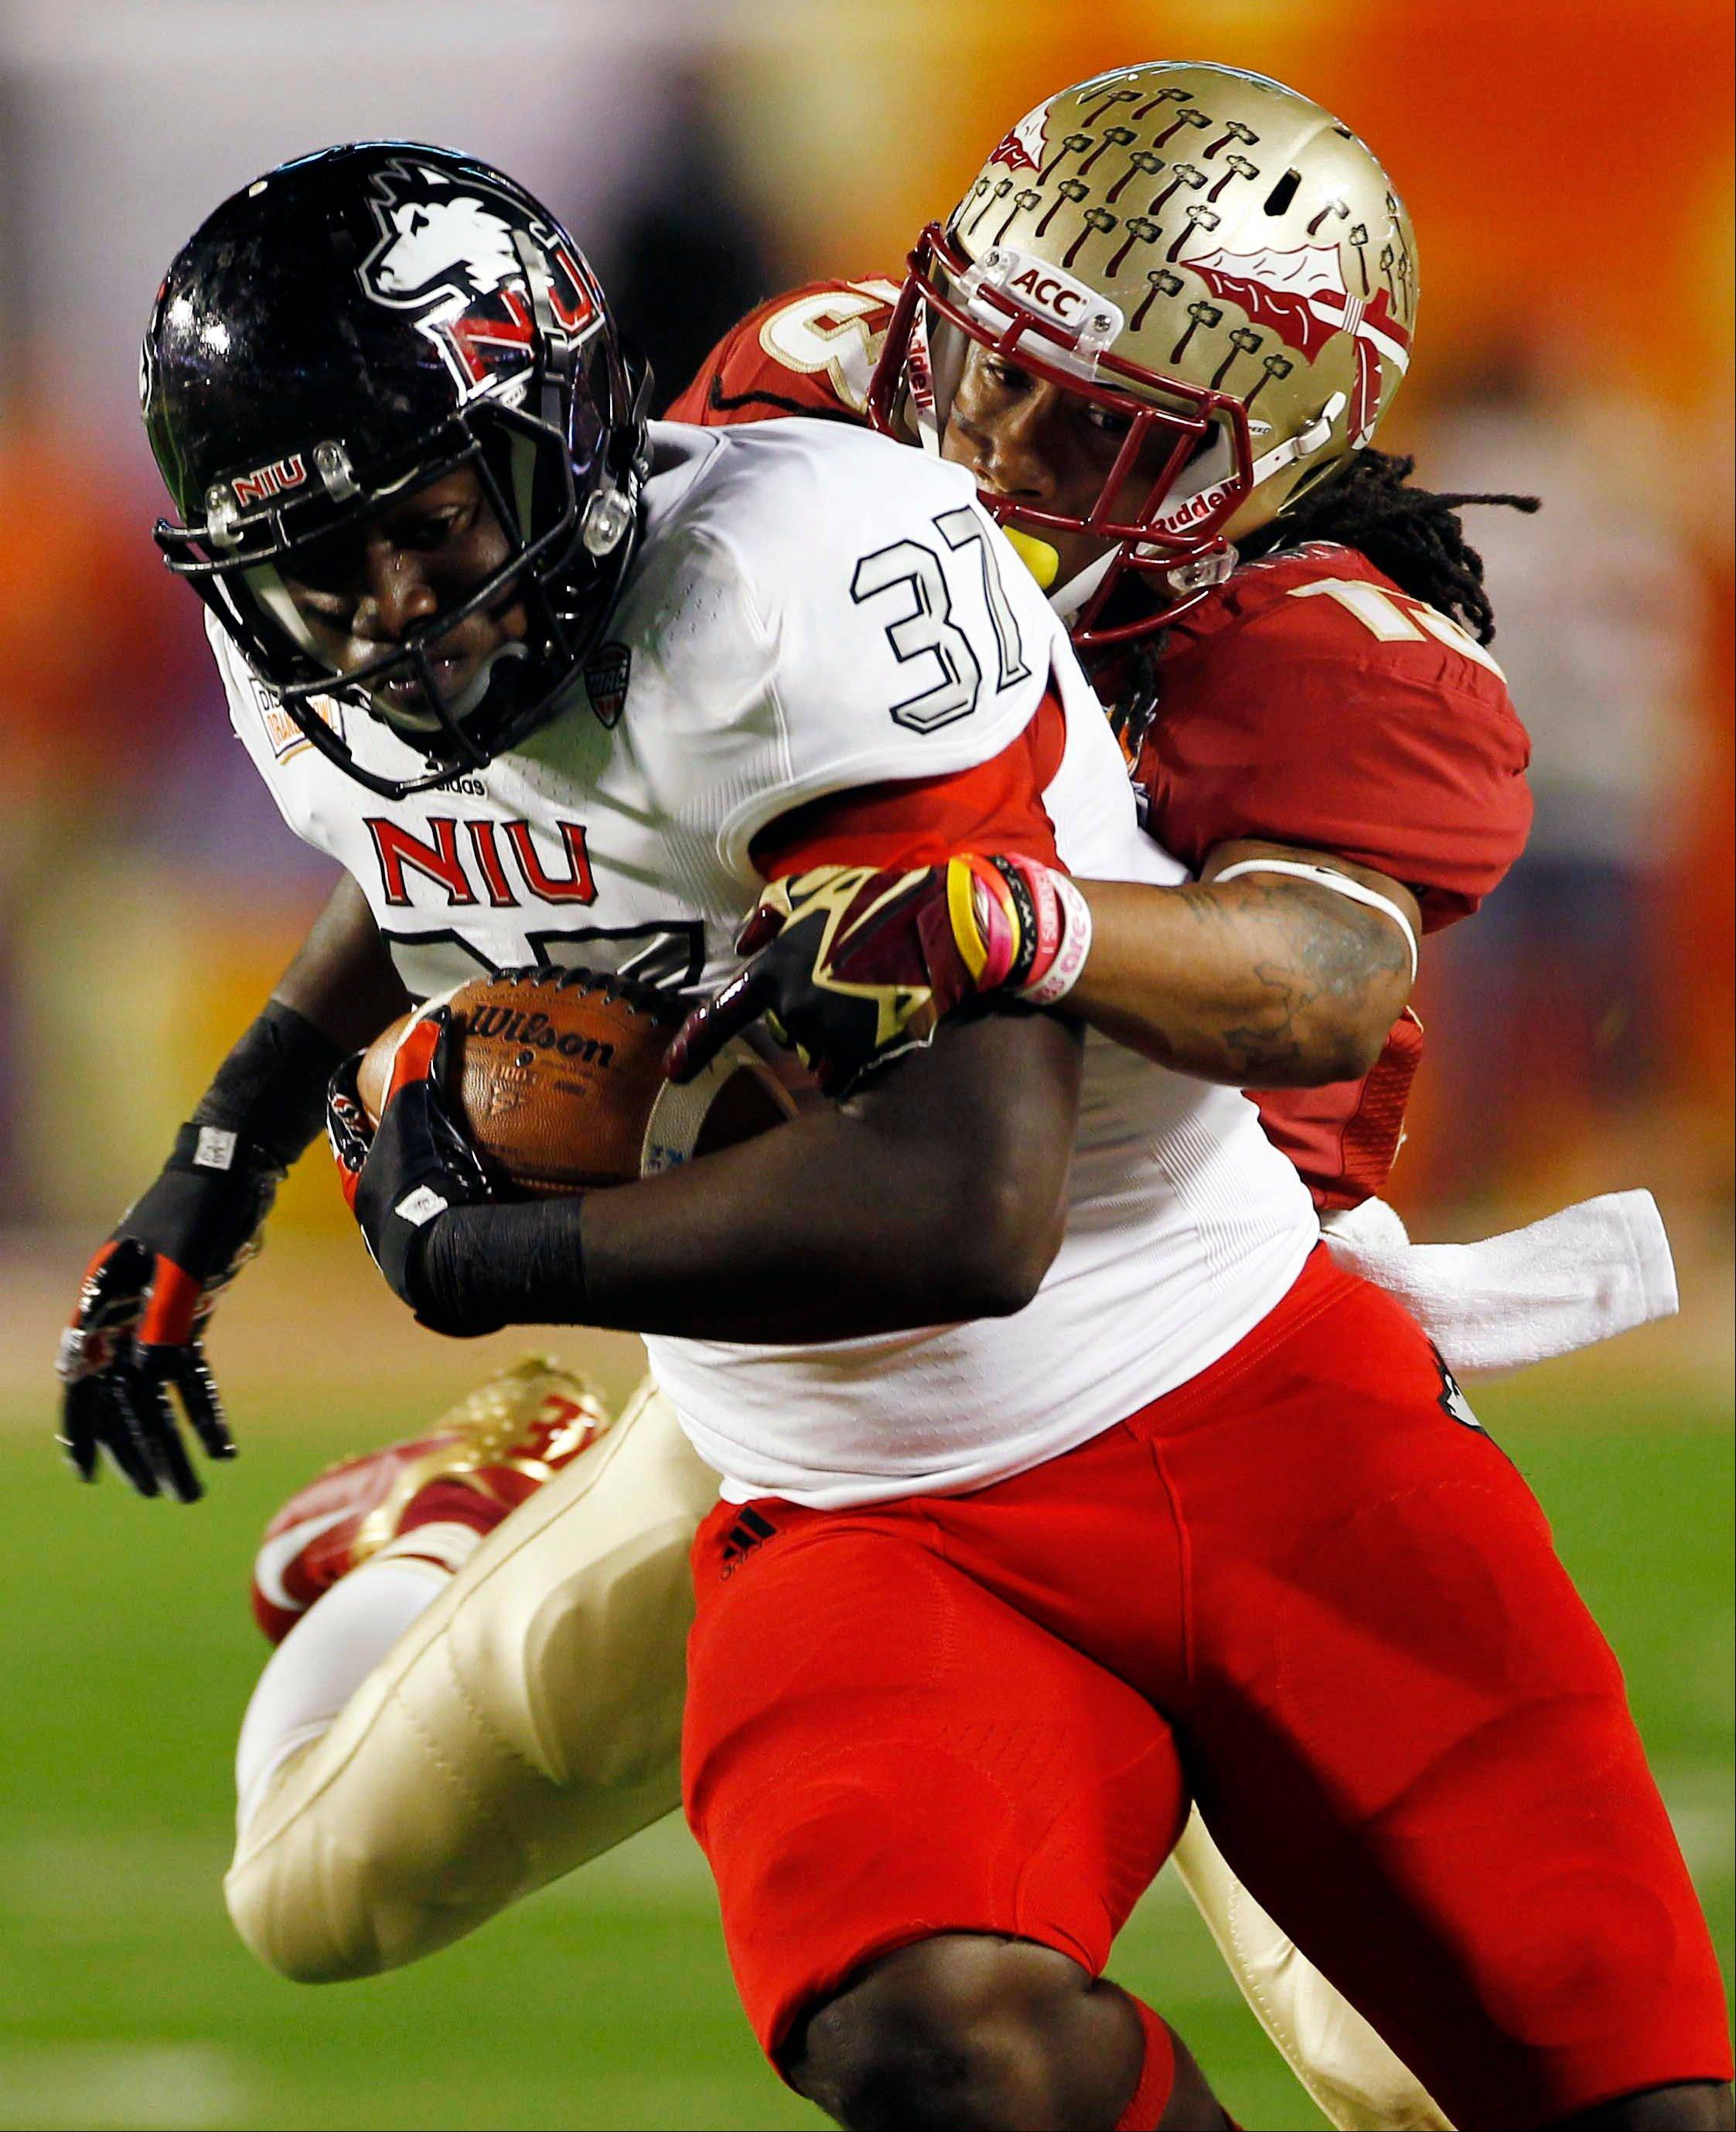 Northern Illinois tight end Desroy Maxwell (37) is tackled by Florida State defensive back Ronald Darby (13) during the first half of the Orange Bowl NCAA college football game, Tuesday, Jan. 1, 2013, in Miami.